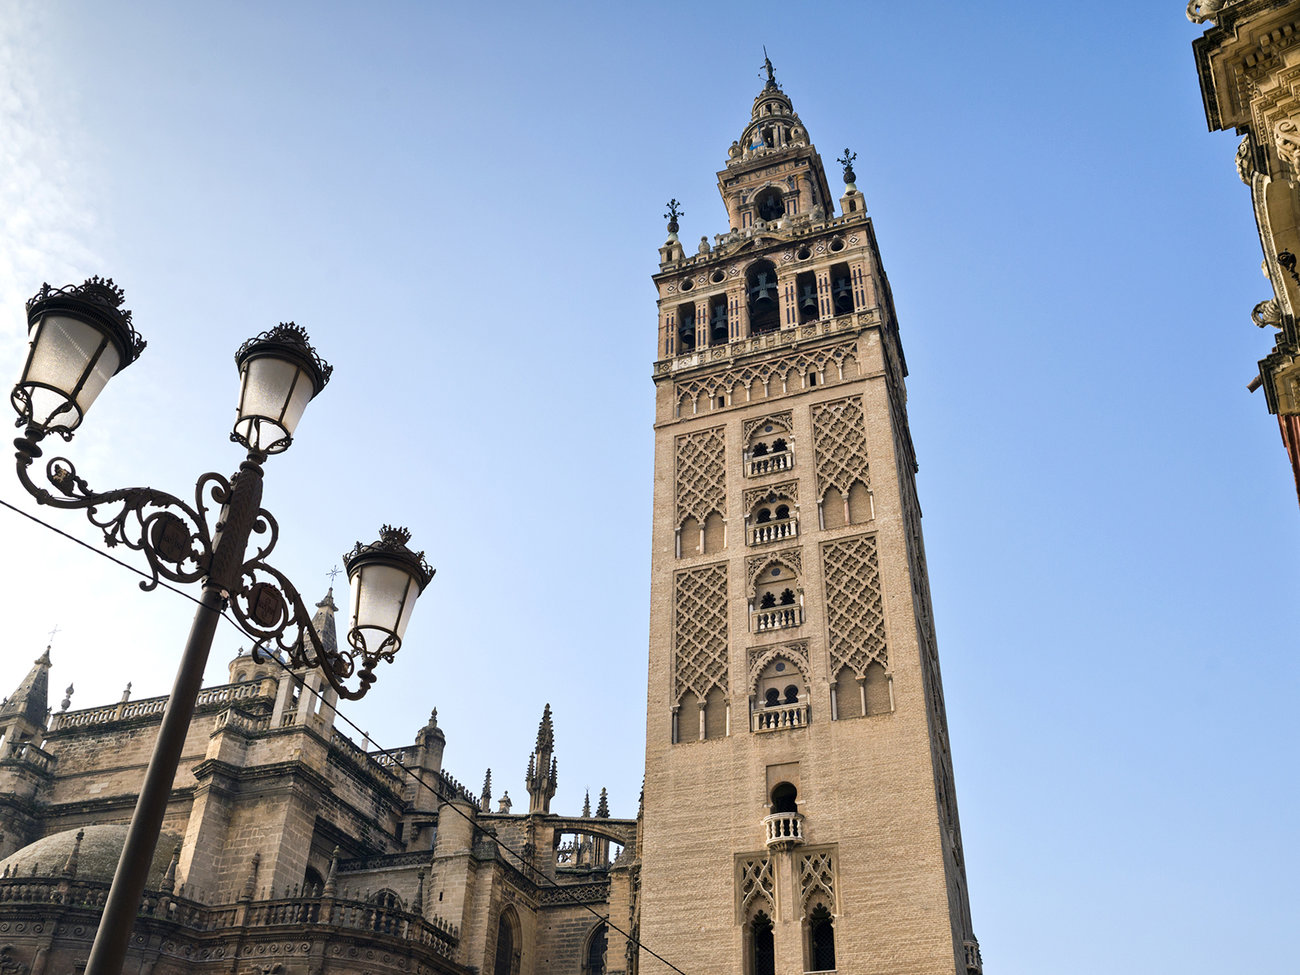 Catedral and Giralda Tower in Seville